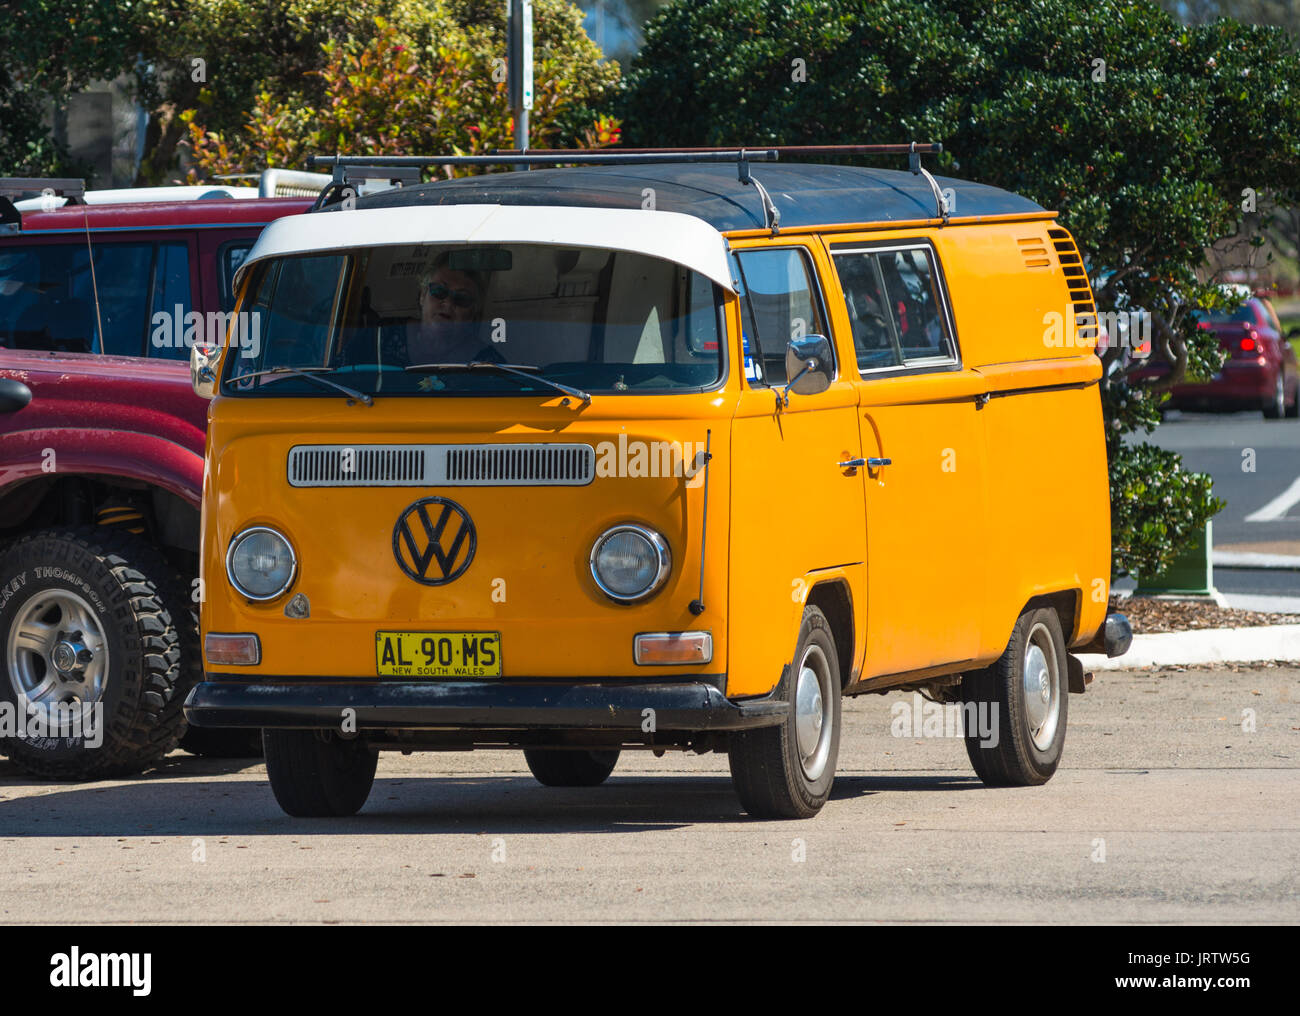 Classic VW mini bus seen at Coffs Harbour Marina, New South Wales, Australia. - Stock Image